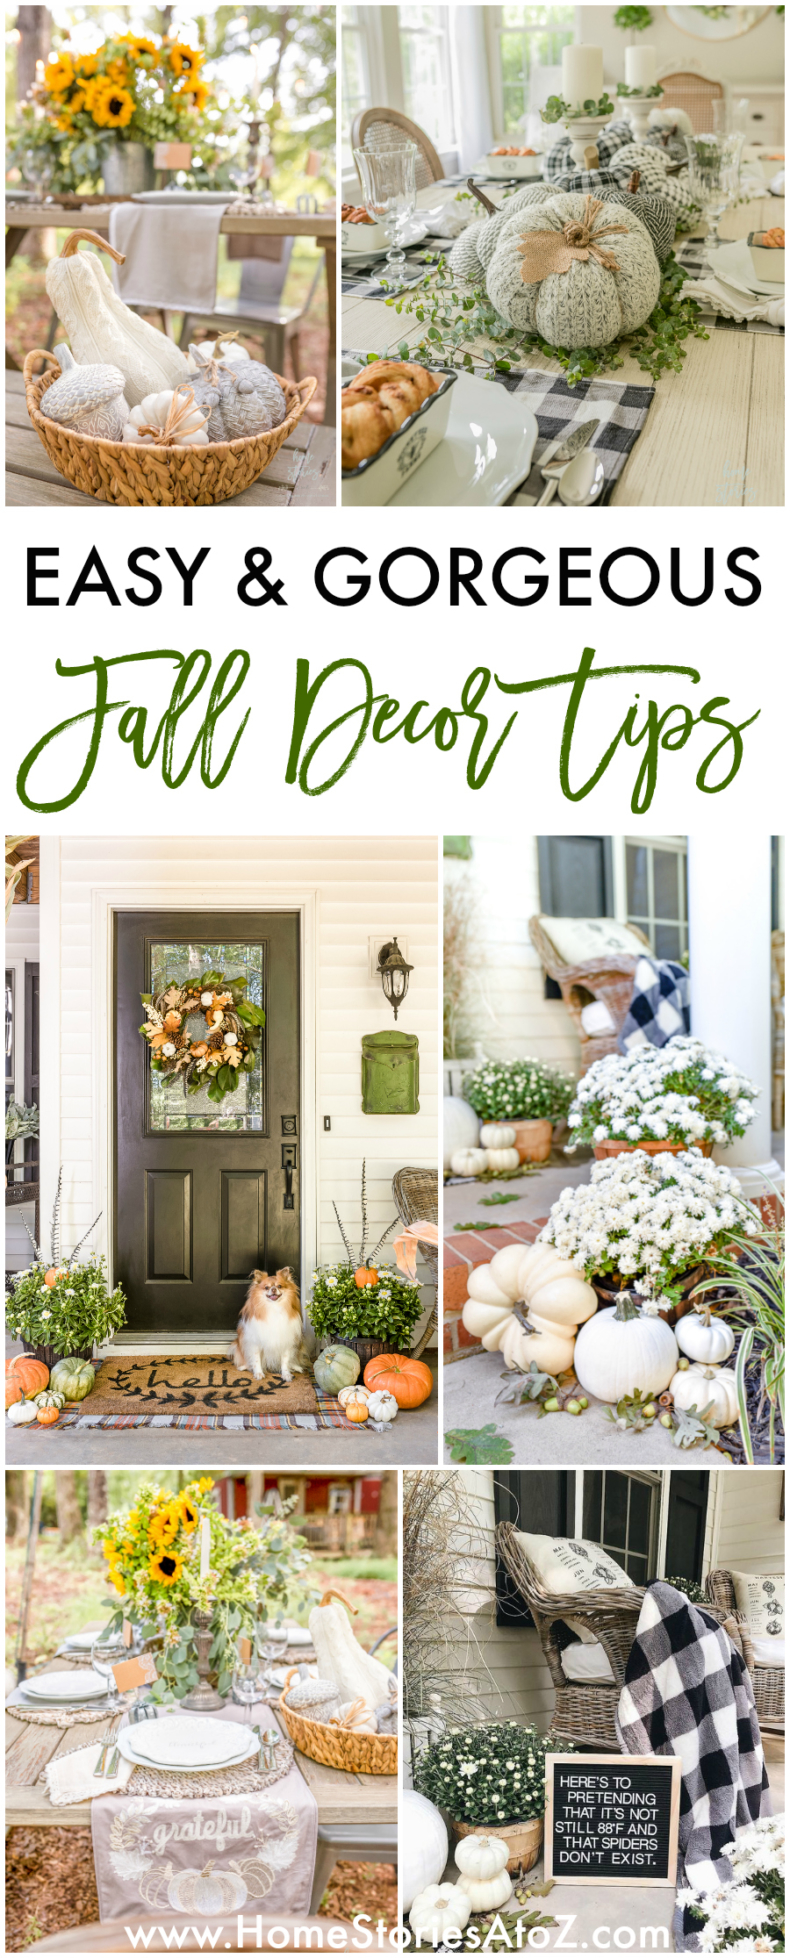 7 Easy Fall Decor Tips for your Fall Inspiration